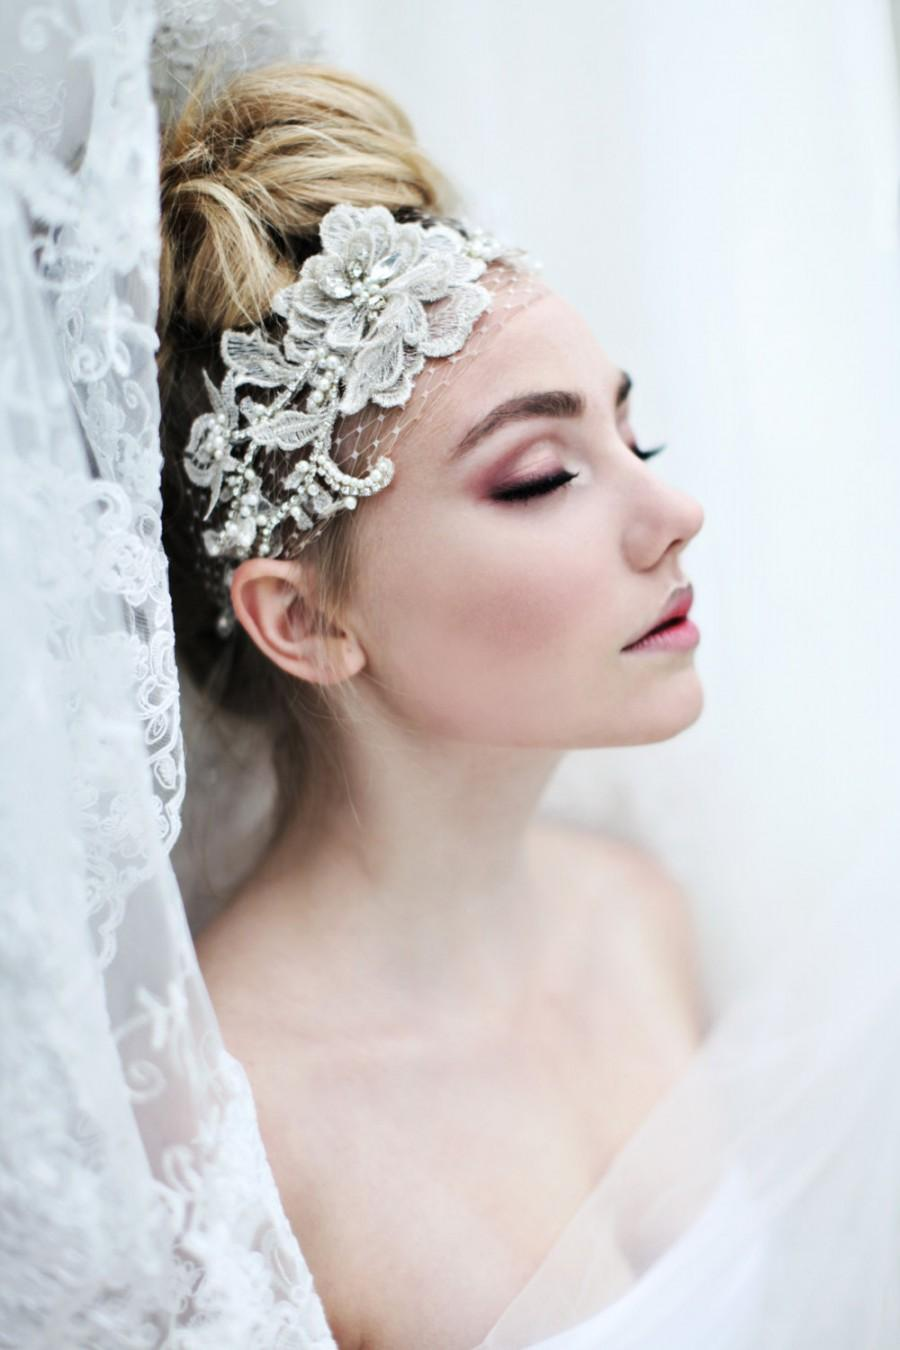 My Fabulous Fiona bridal headband - Romantic birdcage veil with pearls and  rhinestones 3d3262b4a86